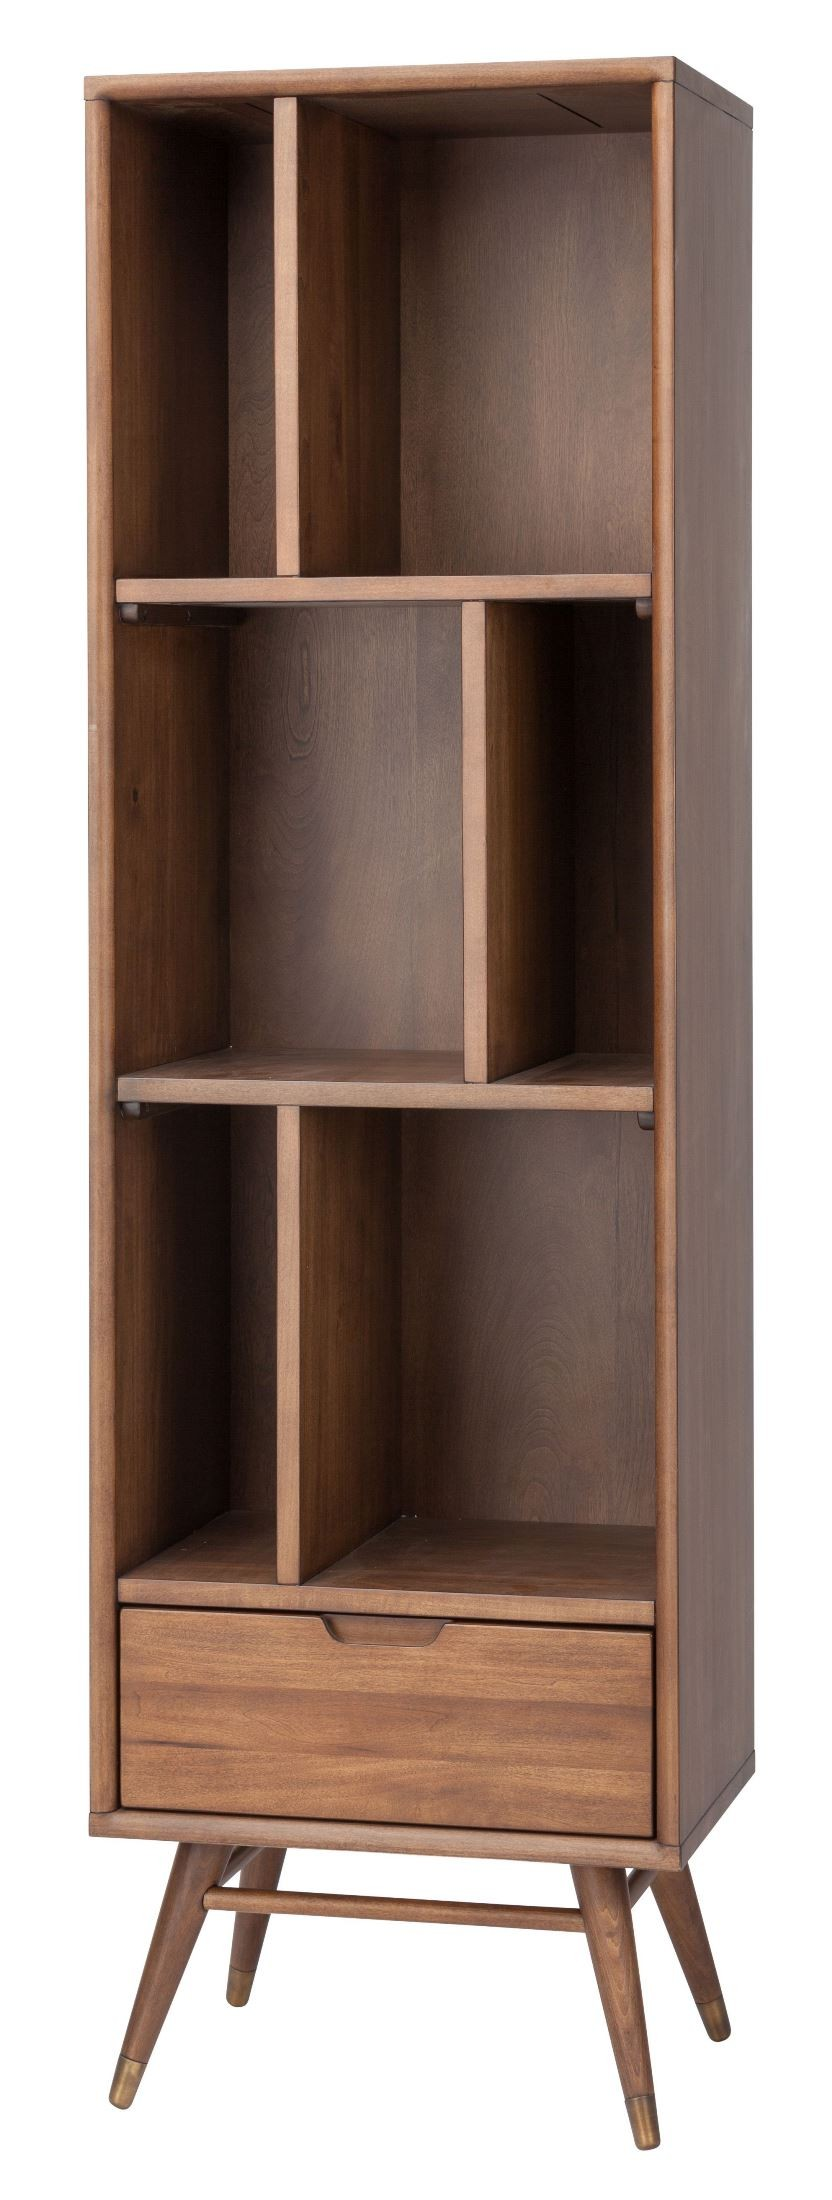 Timber Bookcase: Baas Walnut Wood Small Bookcase Shelving From Nuevo